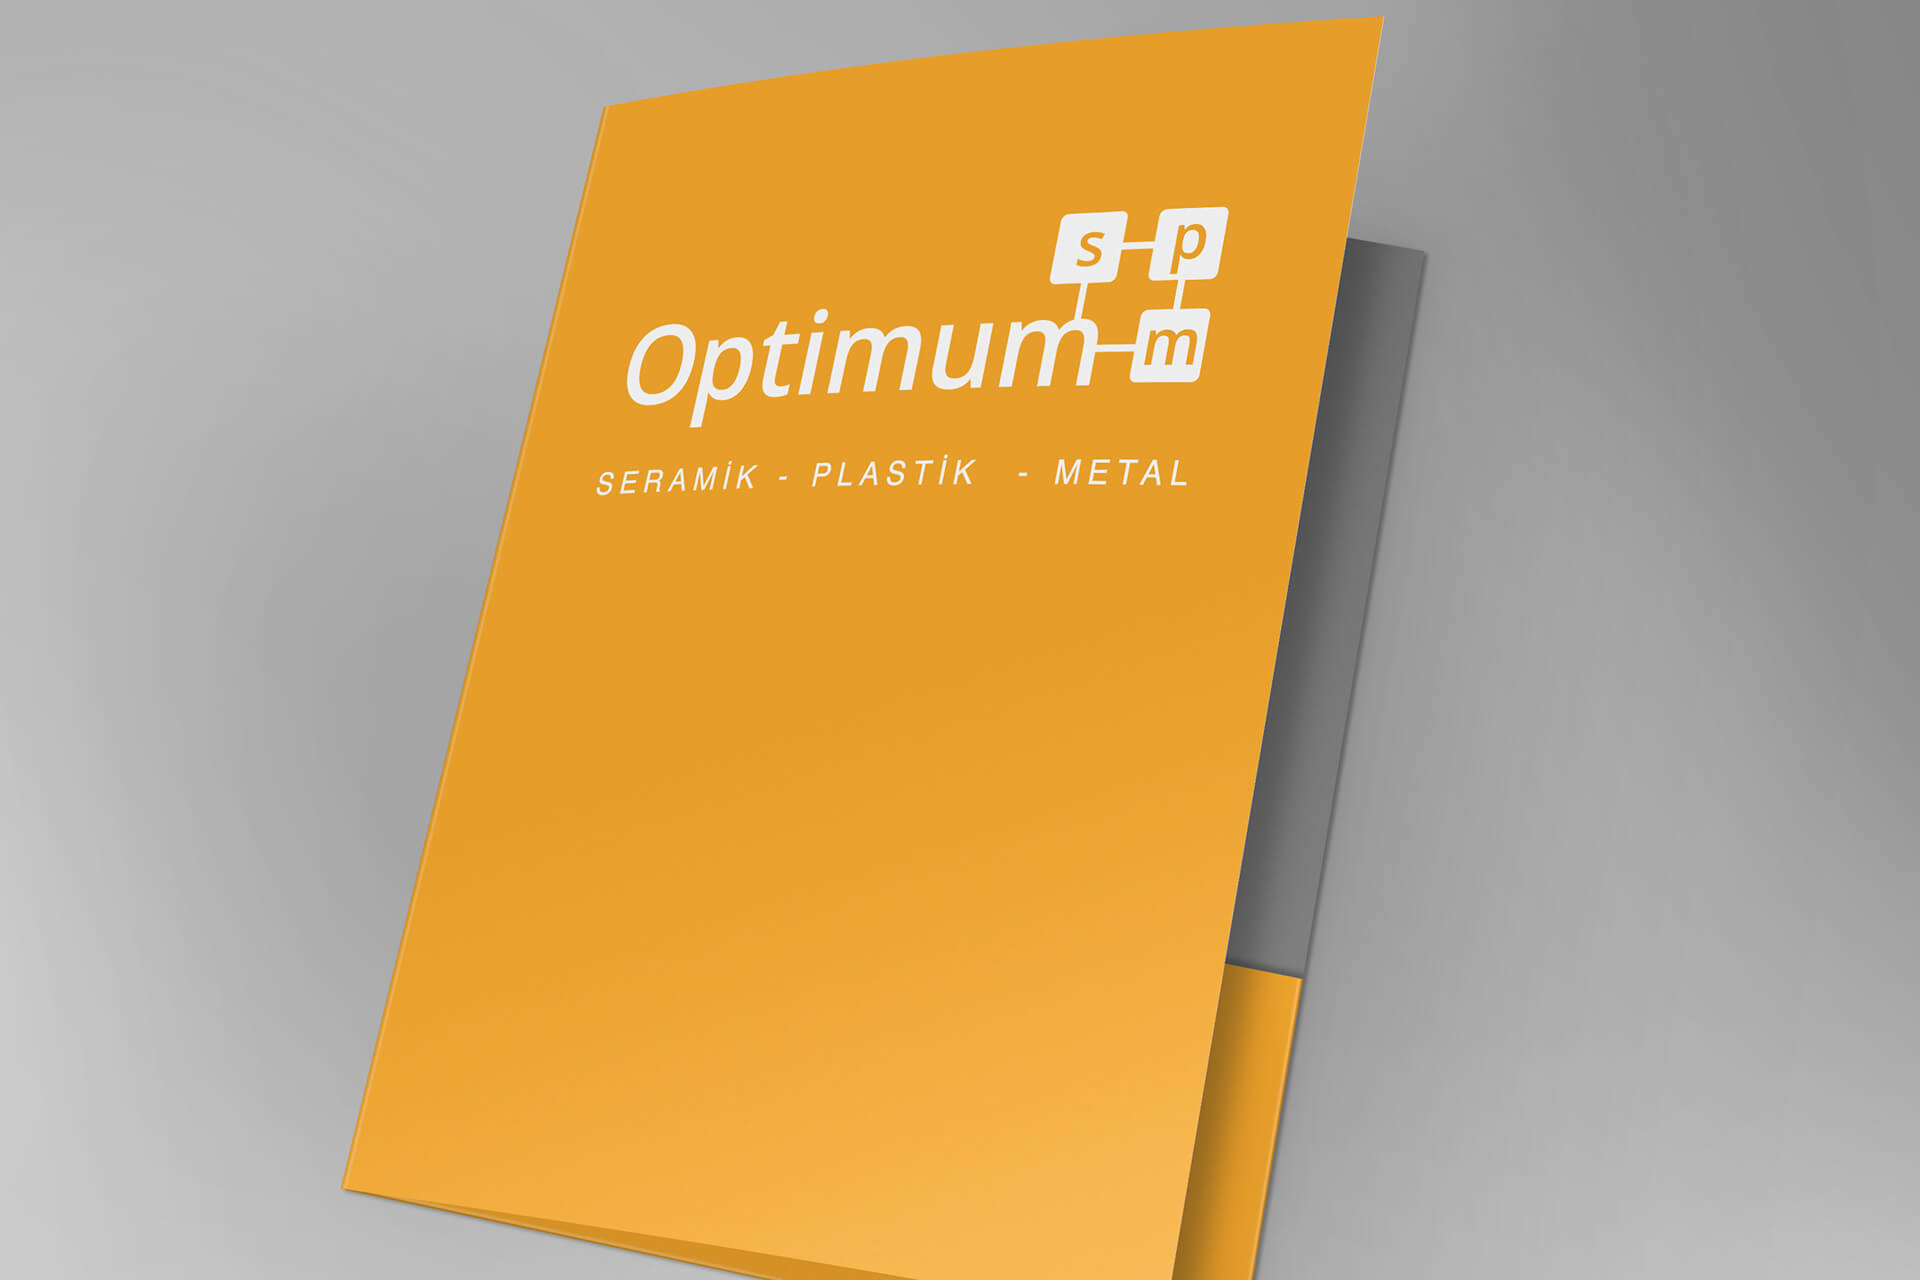 optimumspm_tasarim_4